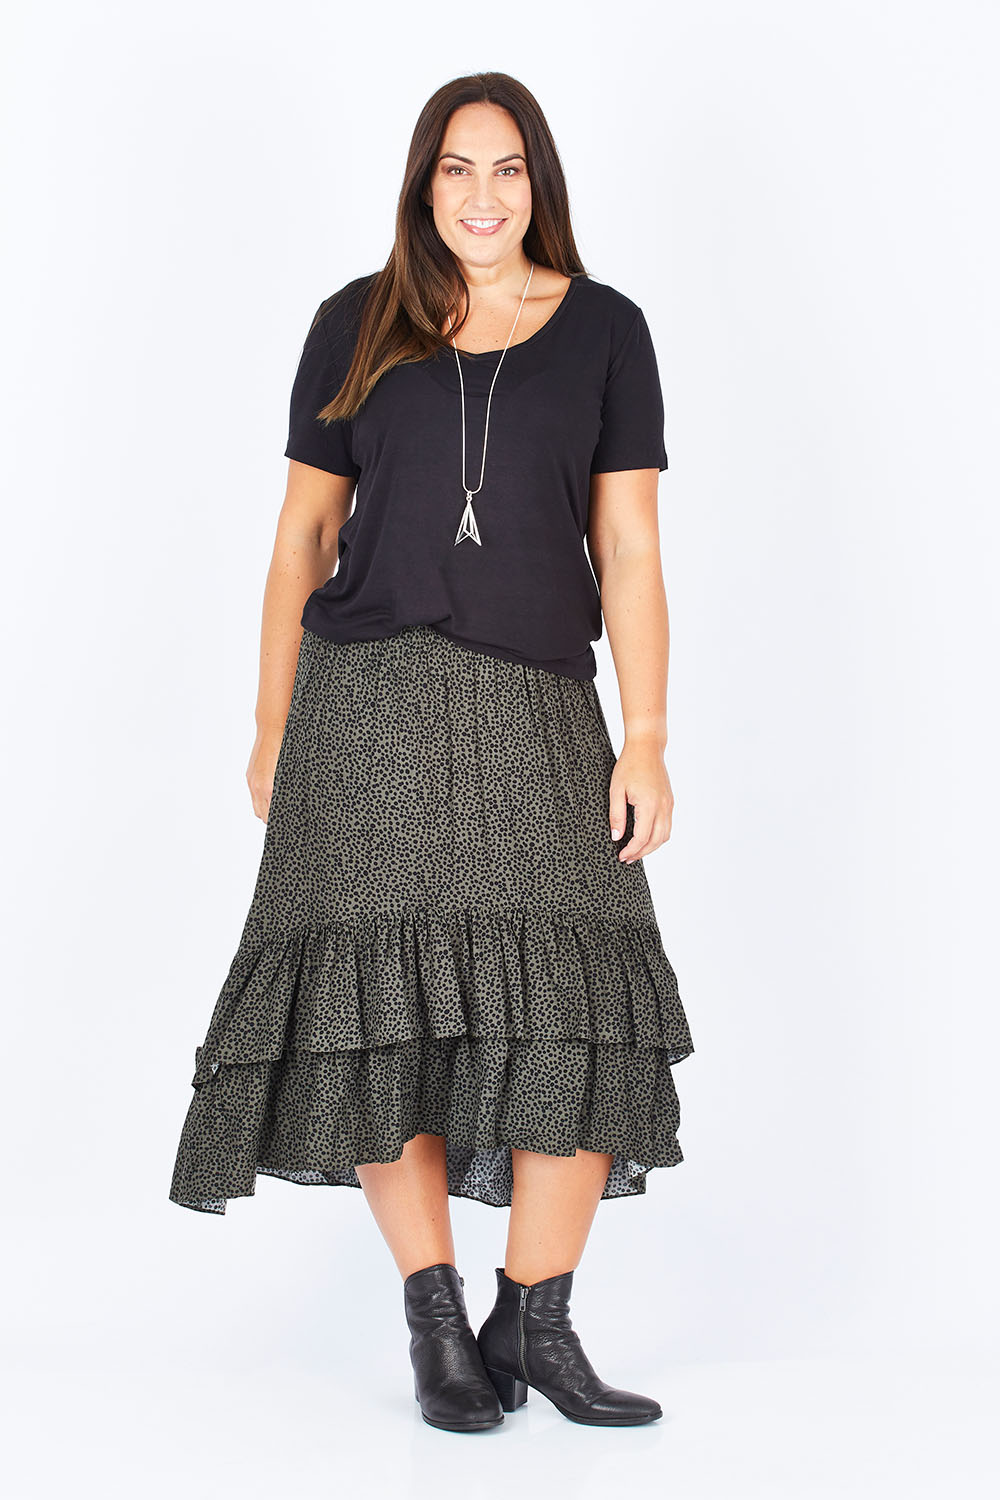 Clothing, Shoes & Accessories Women's Clothing 100% True Pretty Ladies Skirt Size 14